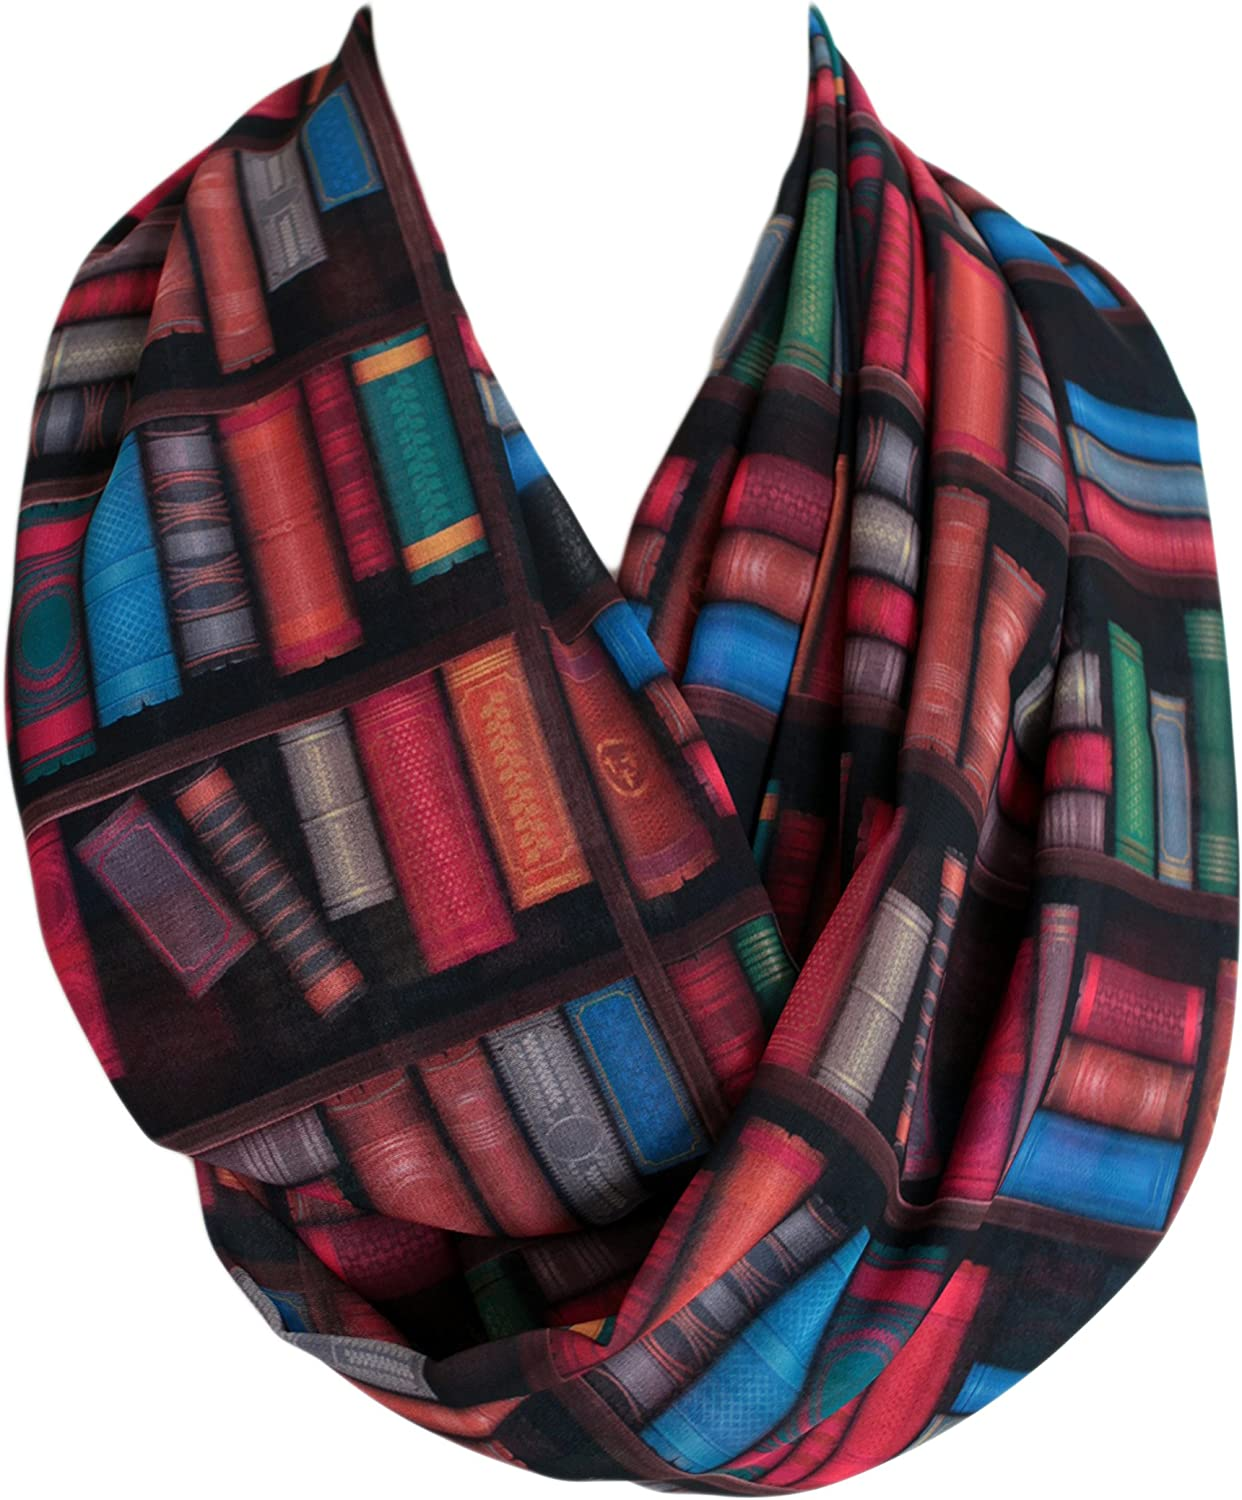 Etwoa's Bookshelf Infinity Scarf Circle Scarf Loop Scarf (colorful)